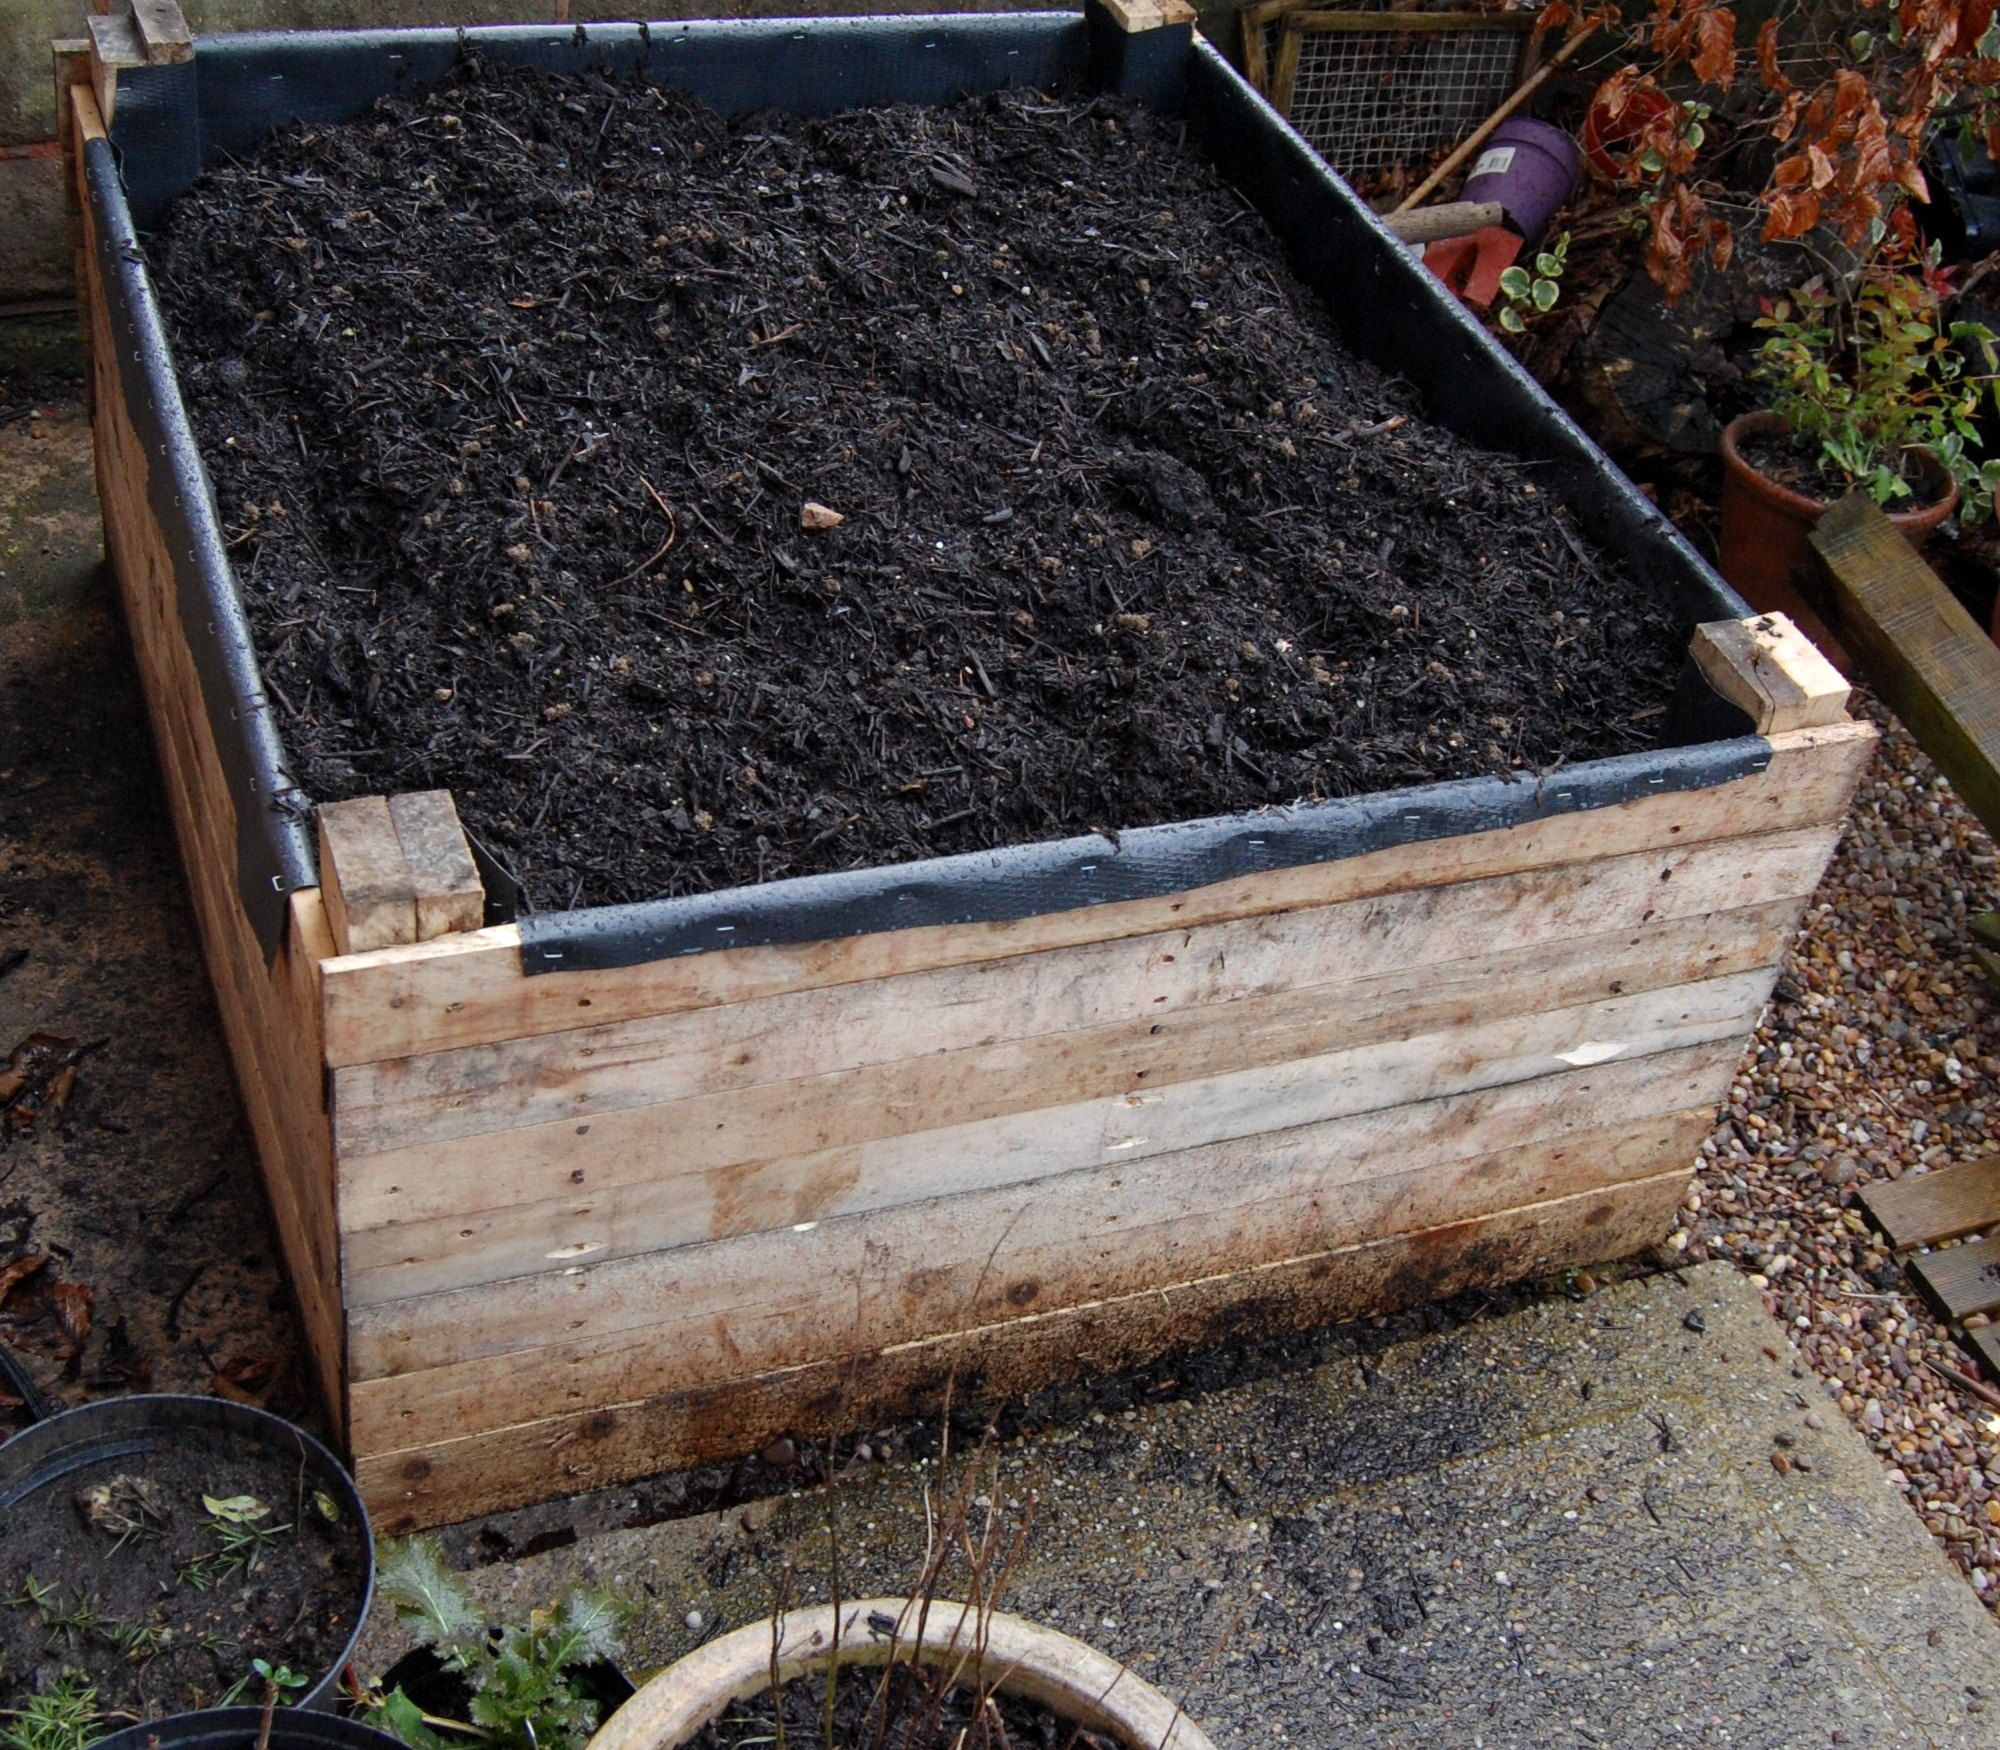 20 Brilliant Raised Garden Bed Ideas You Can Make In A: Build A Raised Bed Out Of Pallets